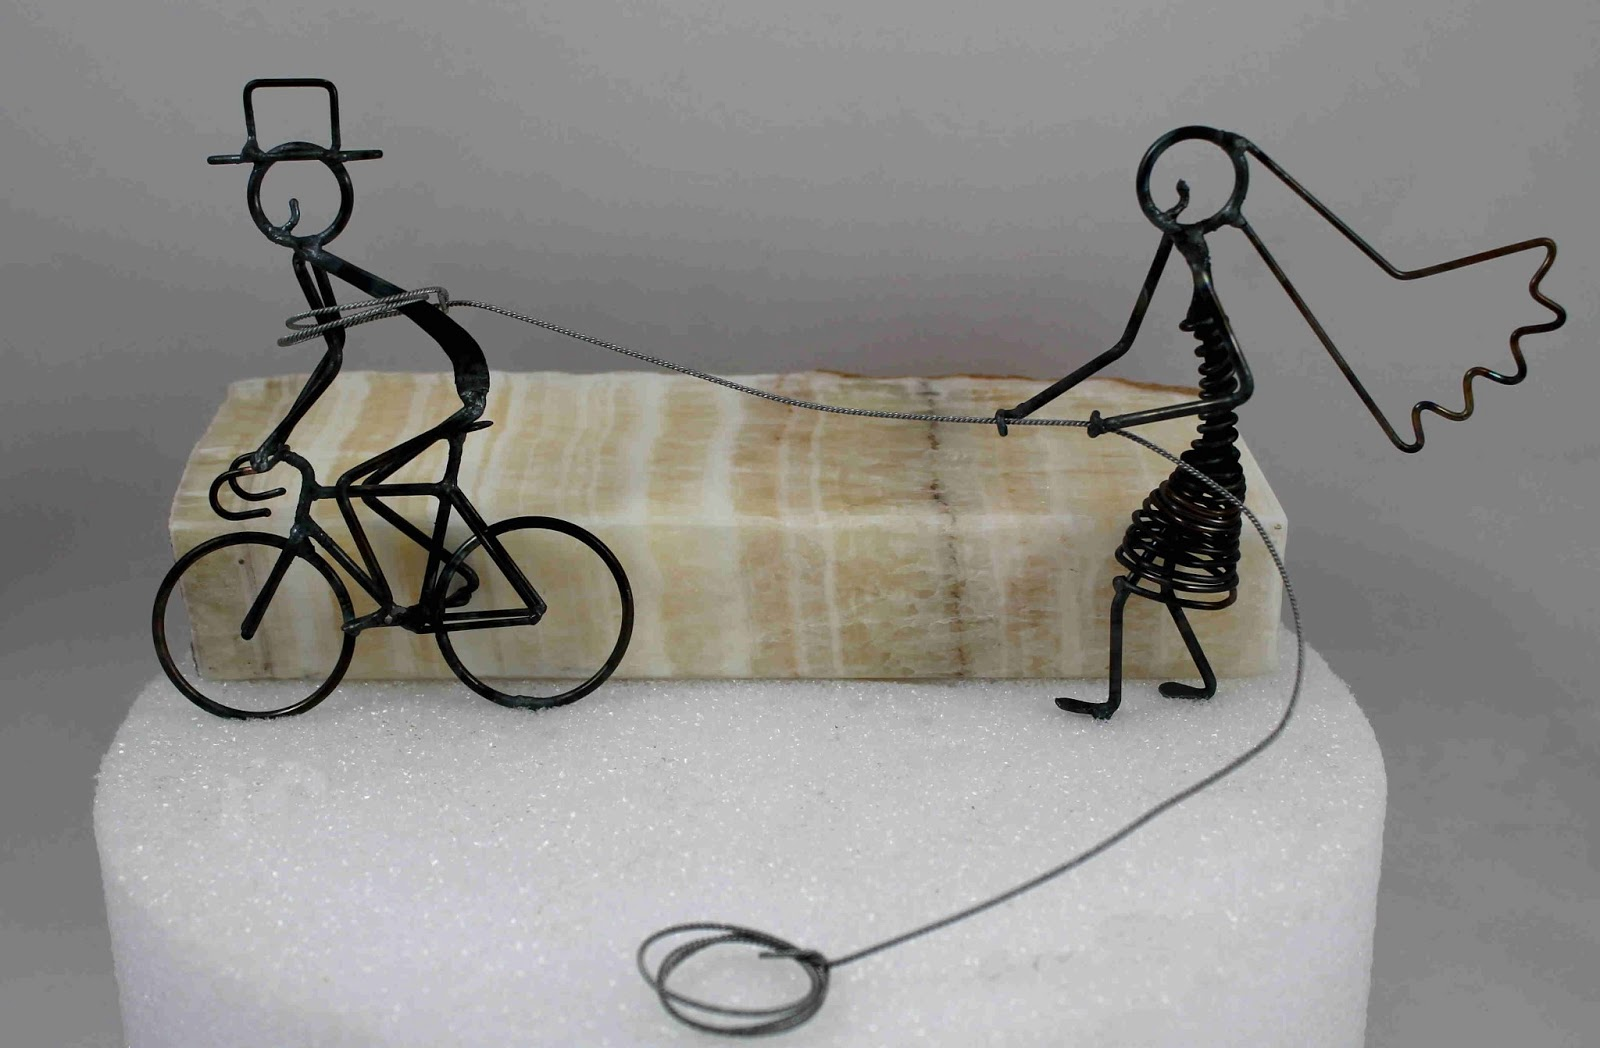 Spring Is Here And Daryl S Rock Wire Works Has Some Great New Cake Toppers Display Rocks For Those Bike Weddings